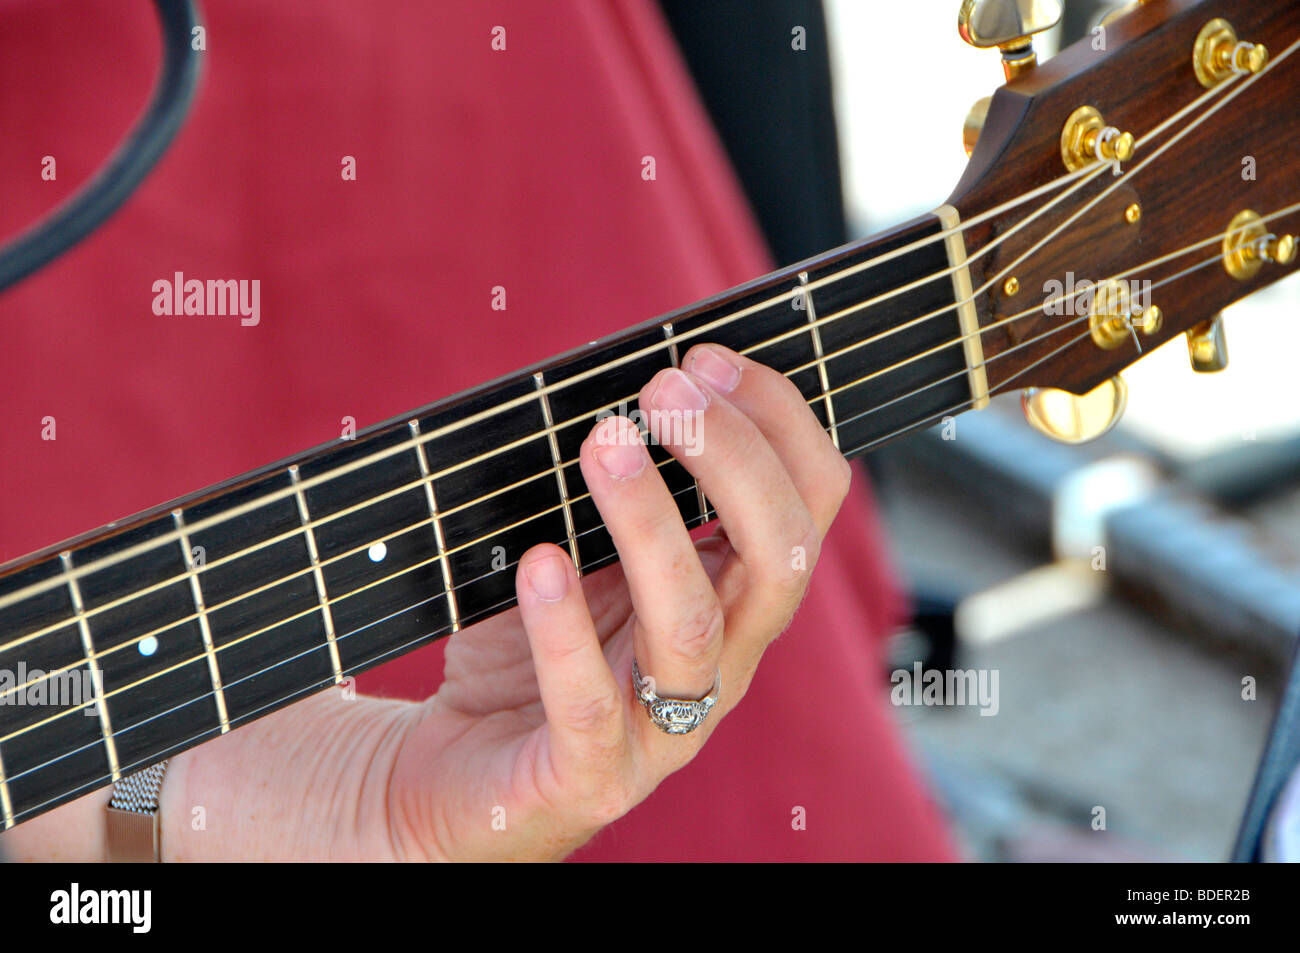 Hand playing a string guitar - Stock Image